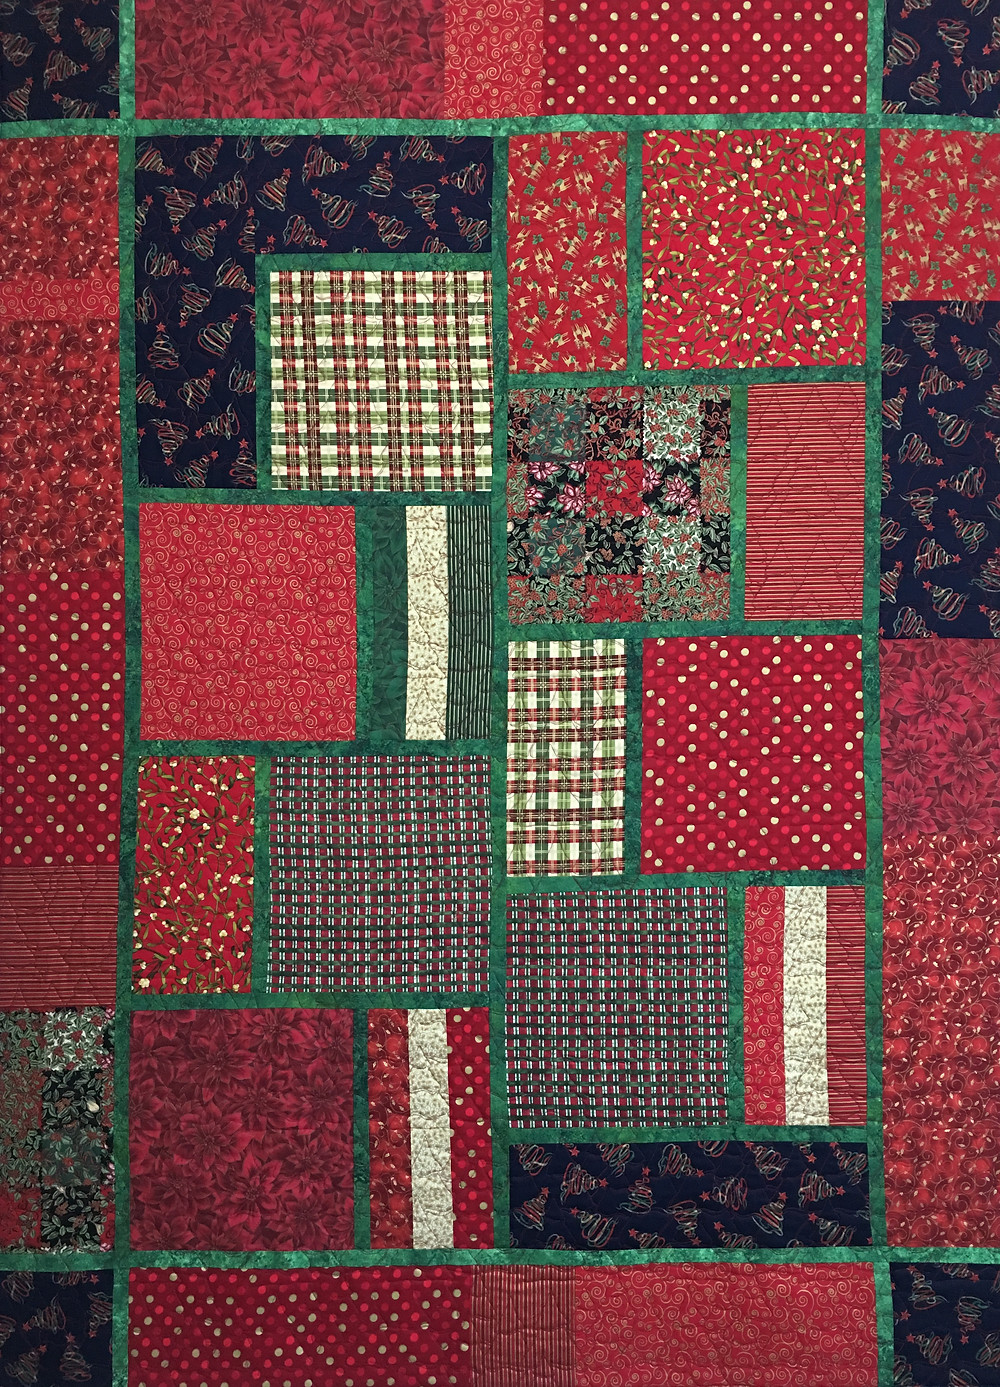 Christmas Red and Green Quilt by Laura Wetzel